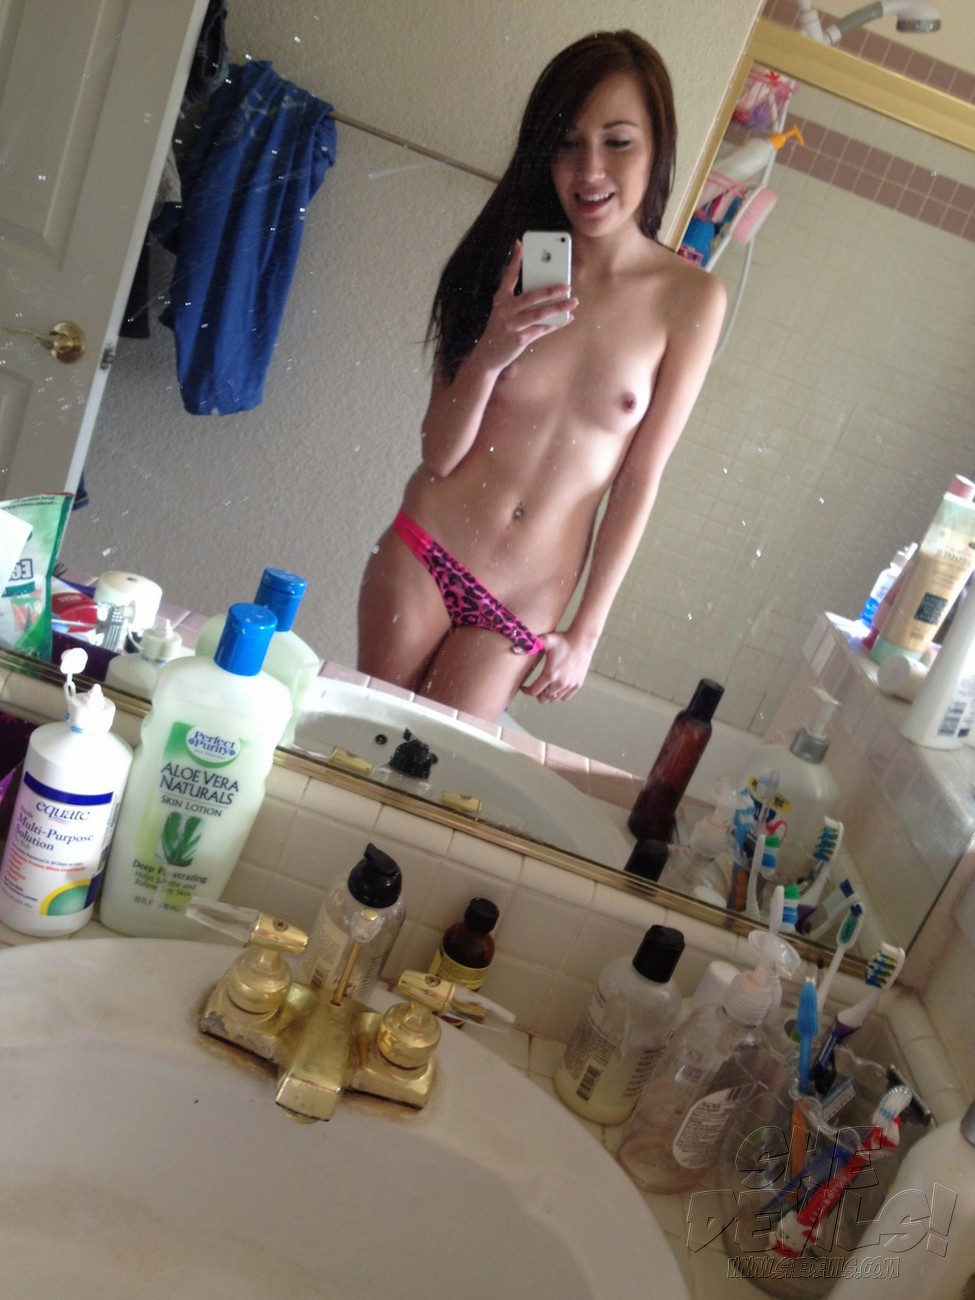 Self Shot Topless Pics Of 18 Year Old Niki  Nude Amateur -6286